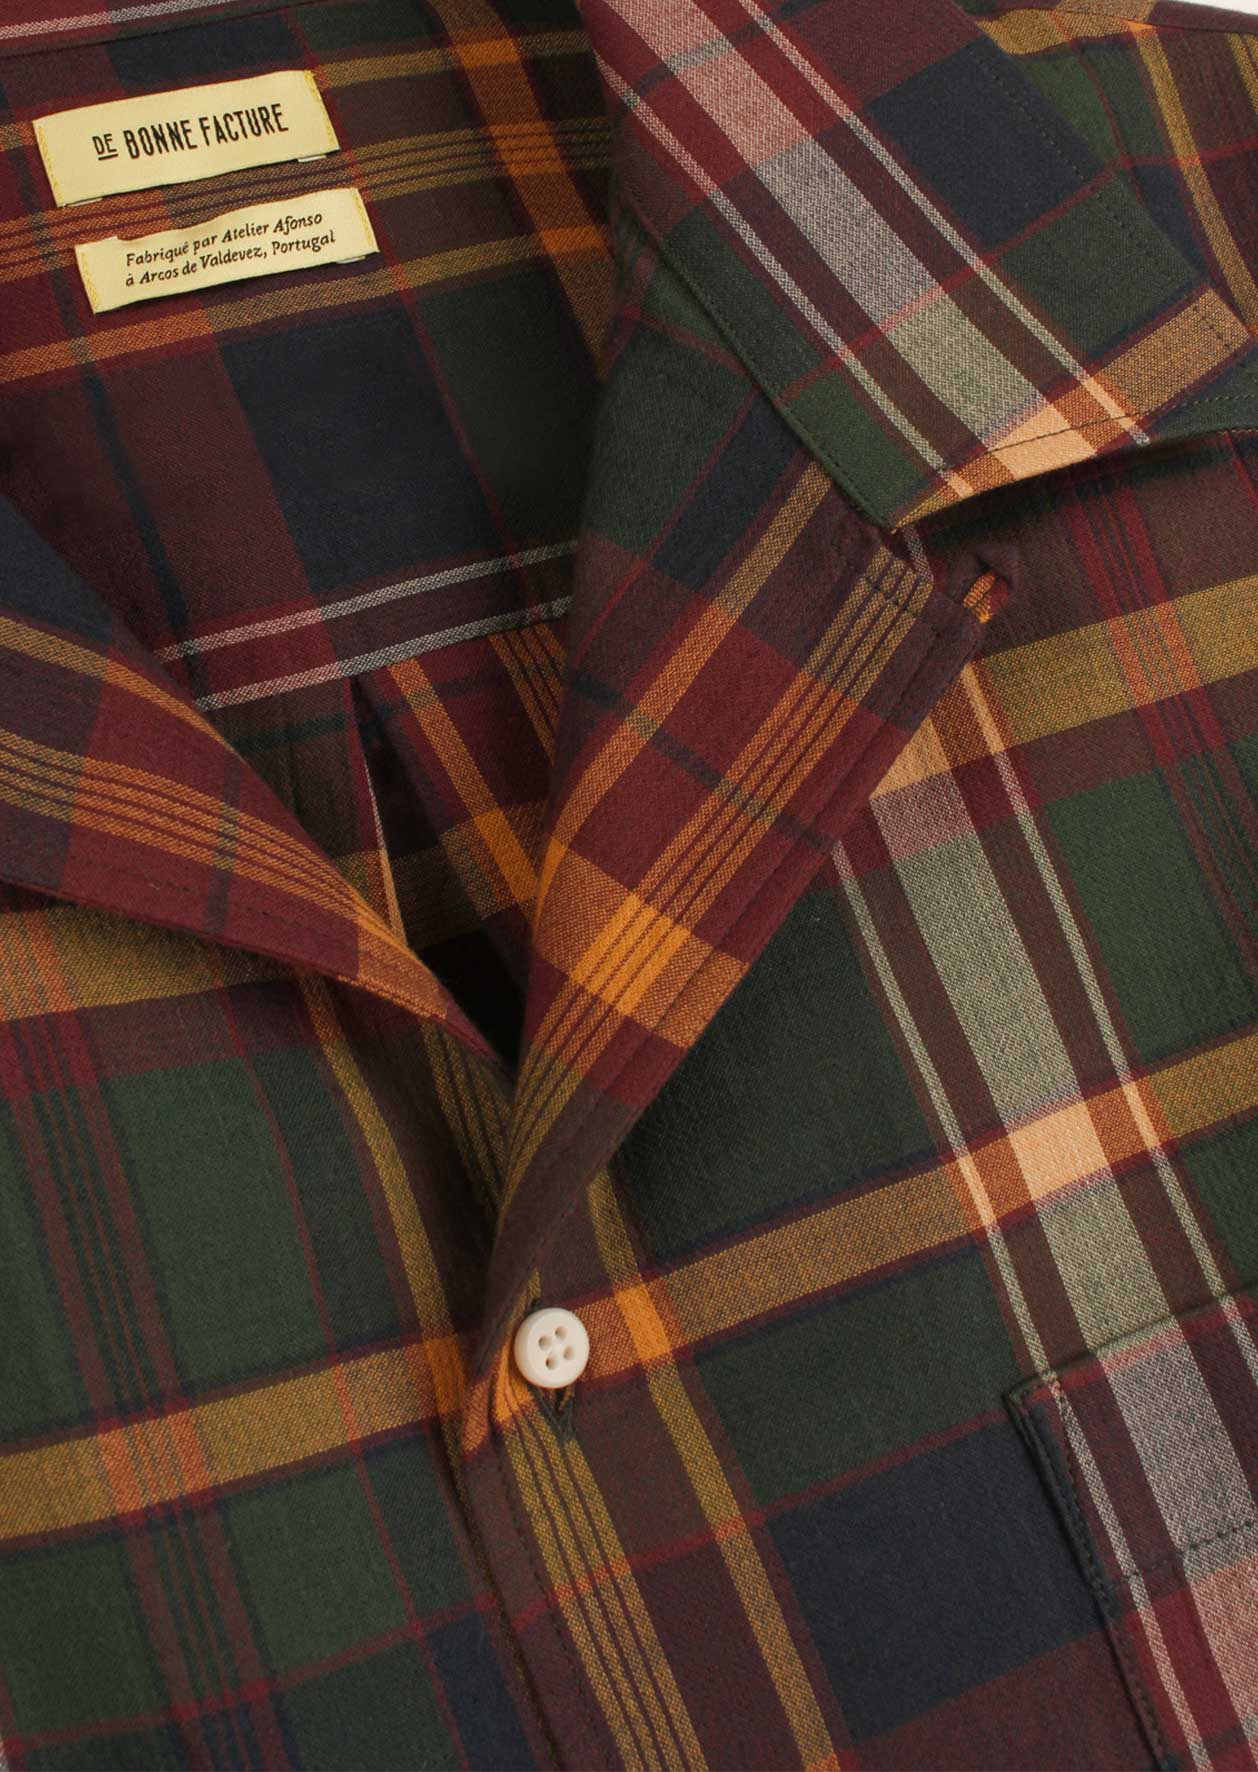 De Bonne Facture - Short sleeve camp collar shirt - Crumpled cotton voile - Burgundy & green checks